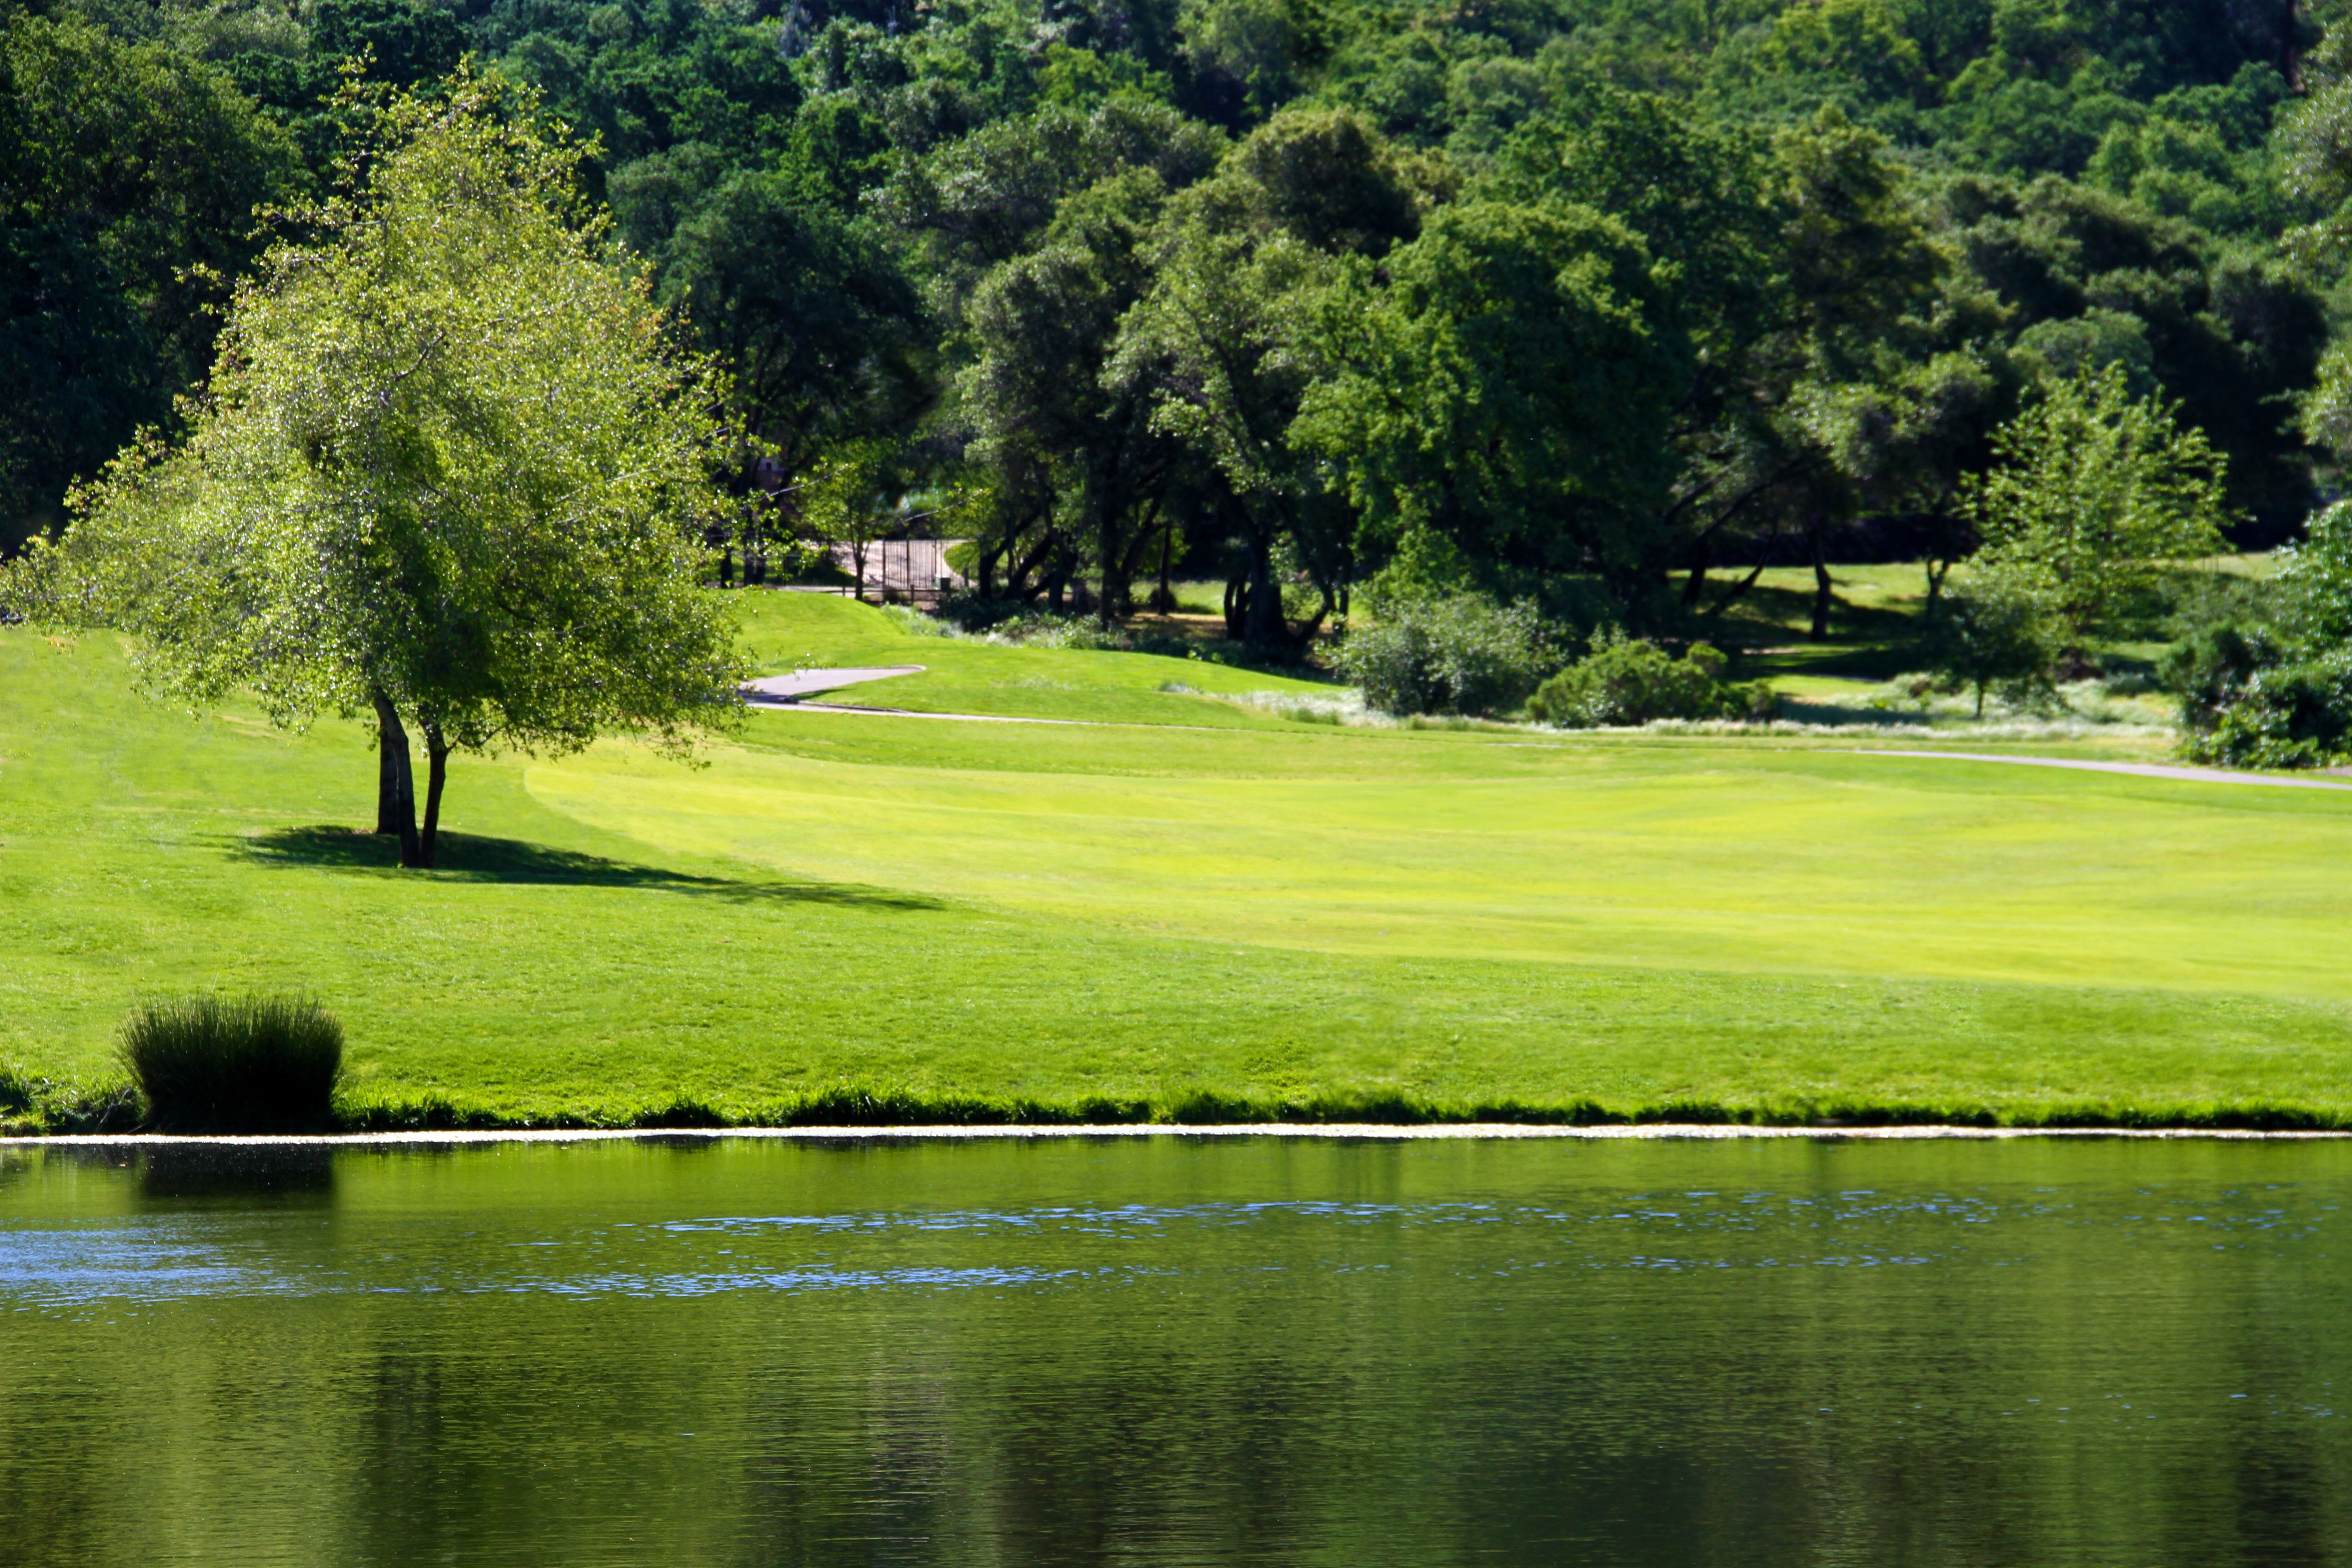 Whitney Oaks Golf Club. | California's best golf courses | Pinterest | Golf and Golf clubs